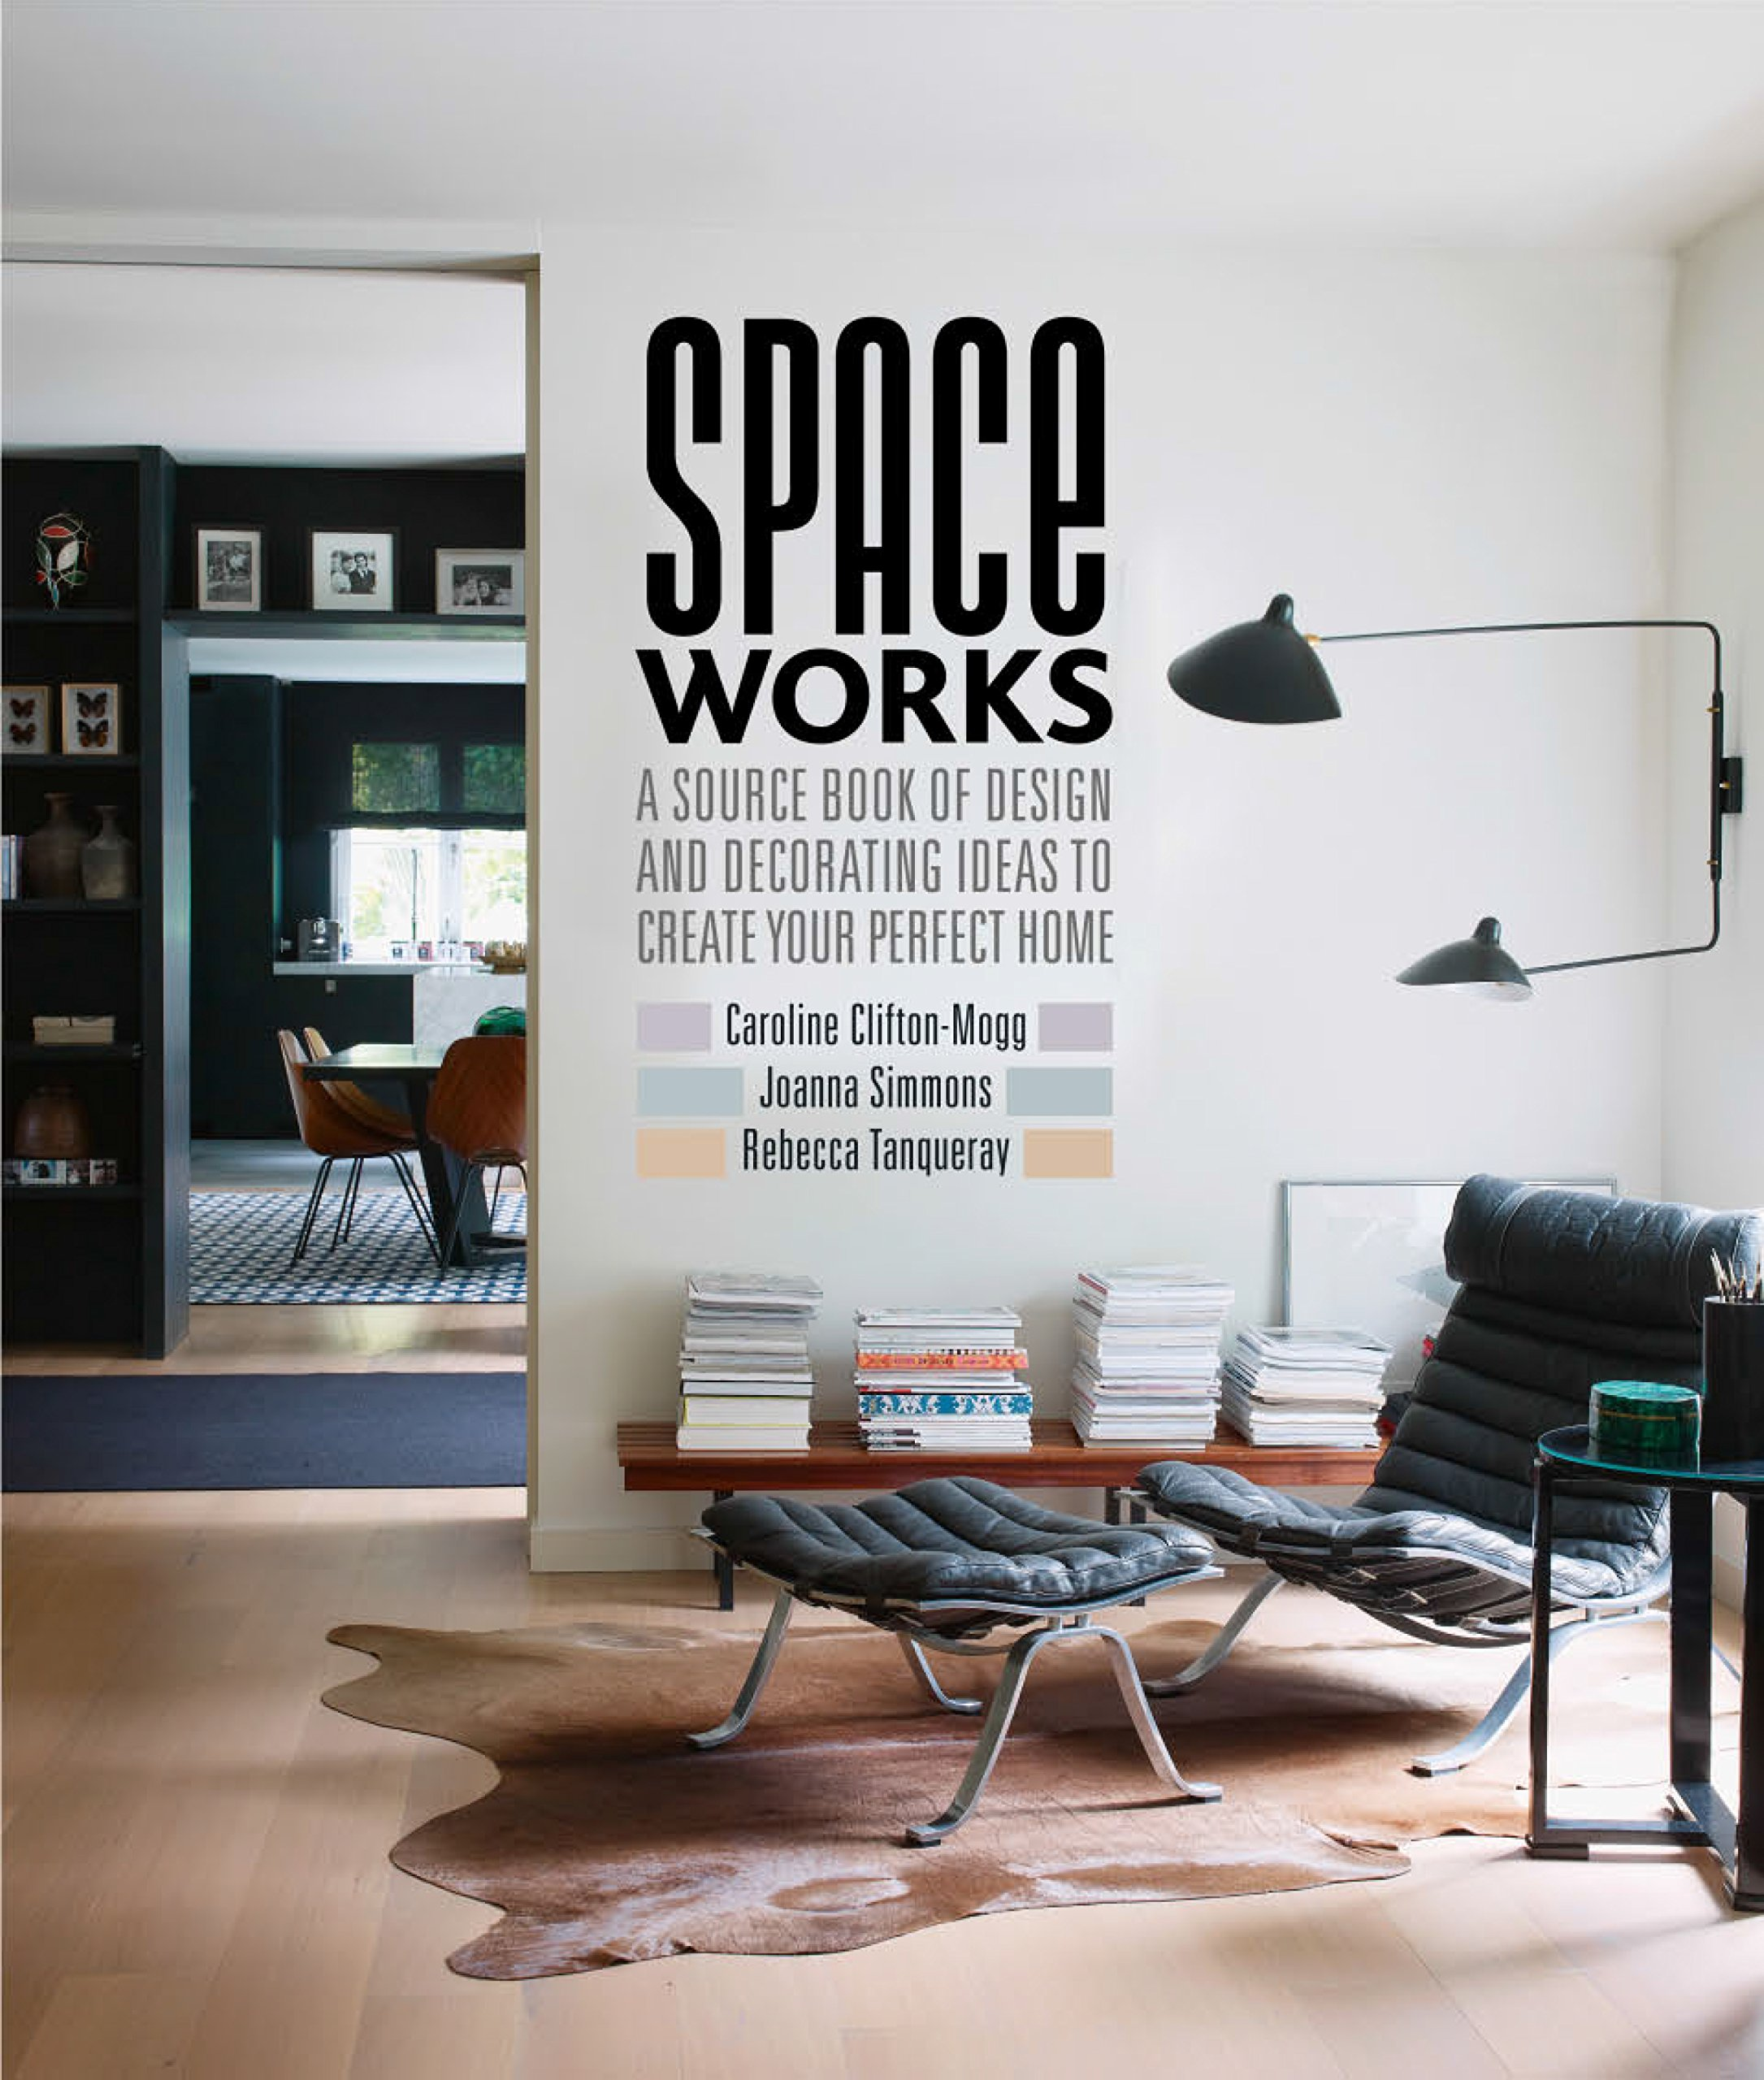 Space works a source book of design and decorating ideas to create your perfect home hardcover march 14 2017